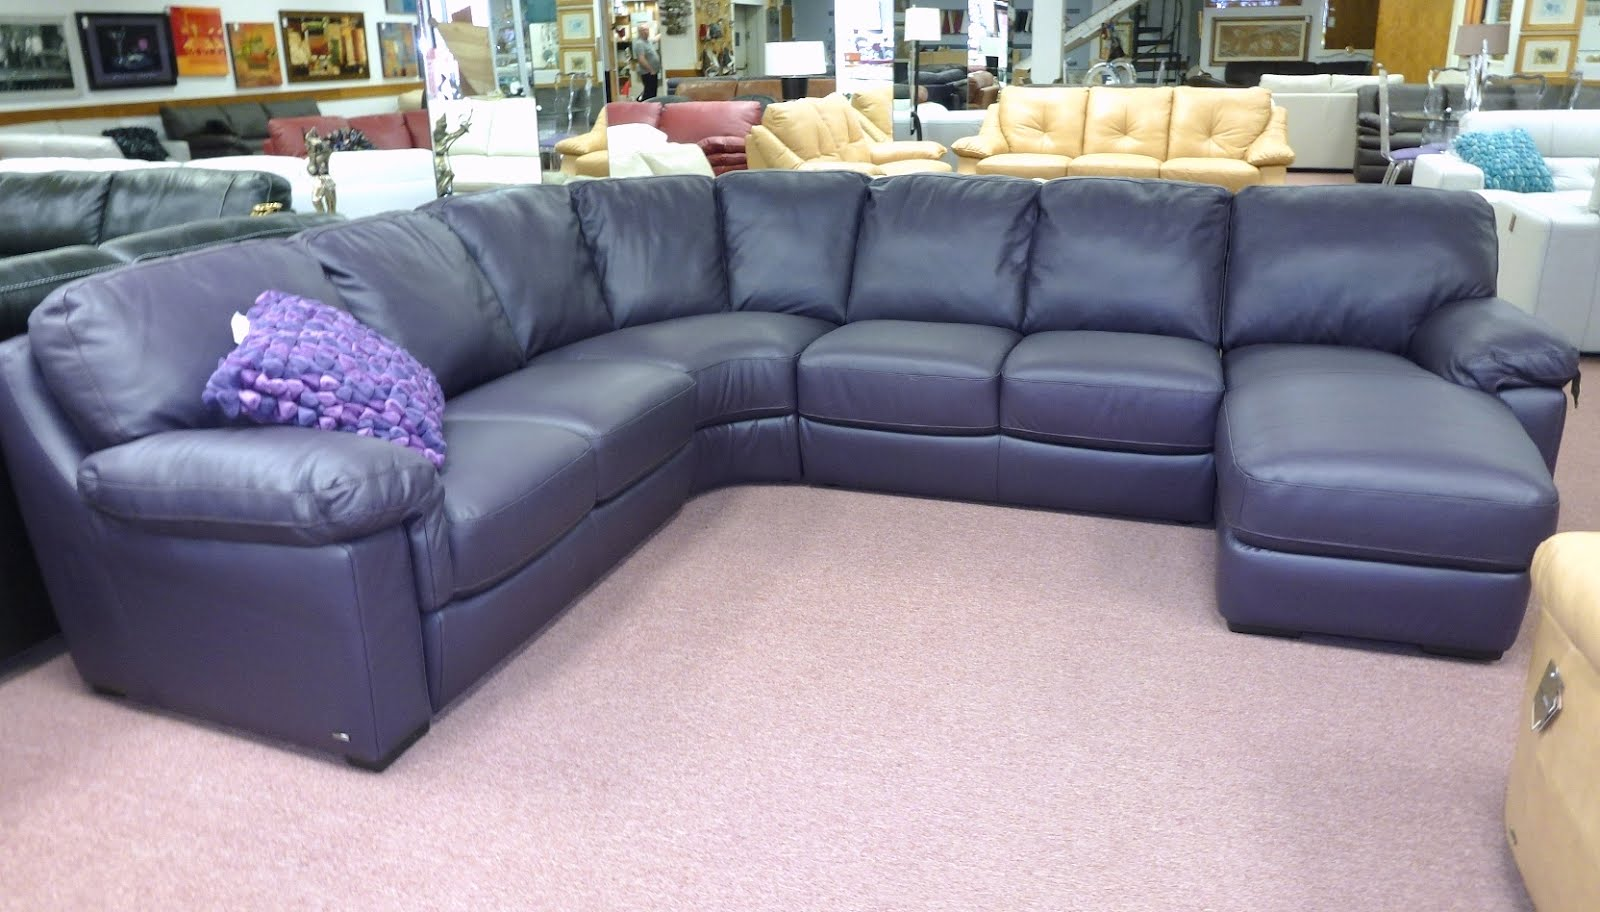 plum leather sofa cloth online delhi natuzzi sofas and sectionals by interior concepts